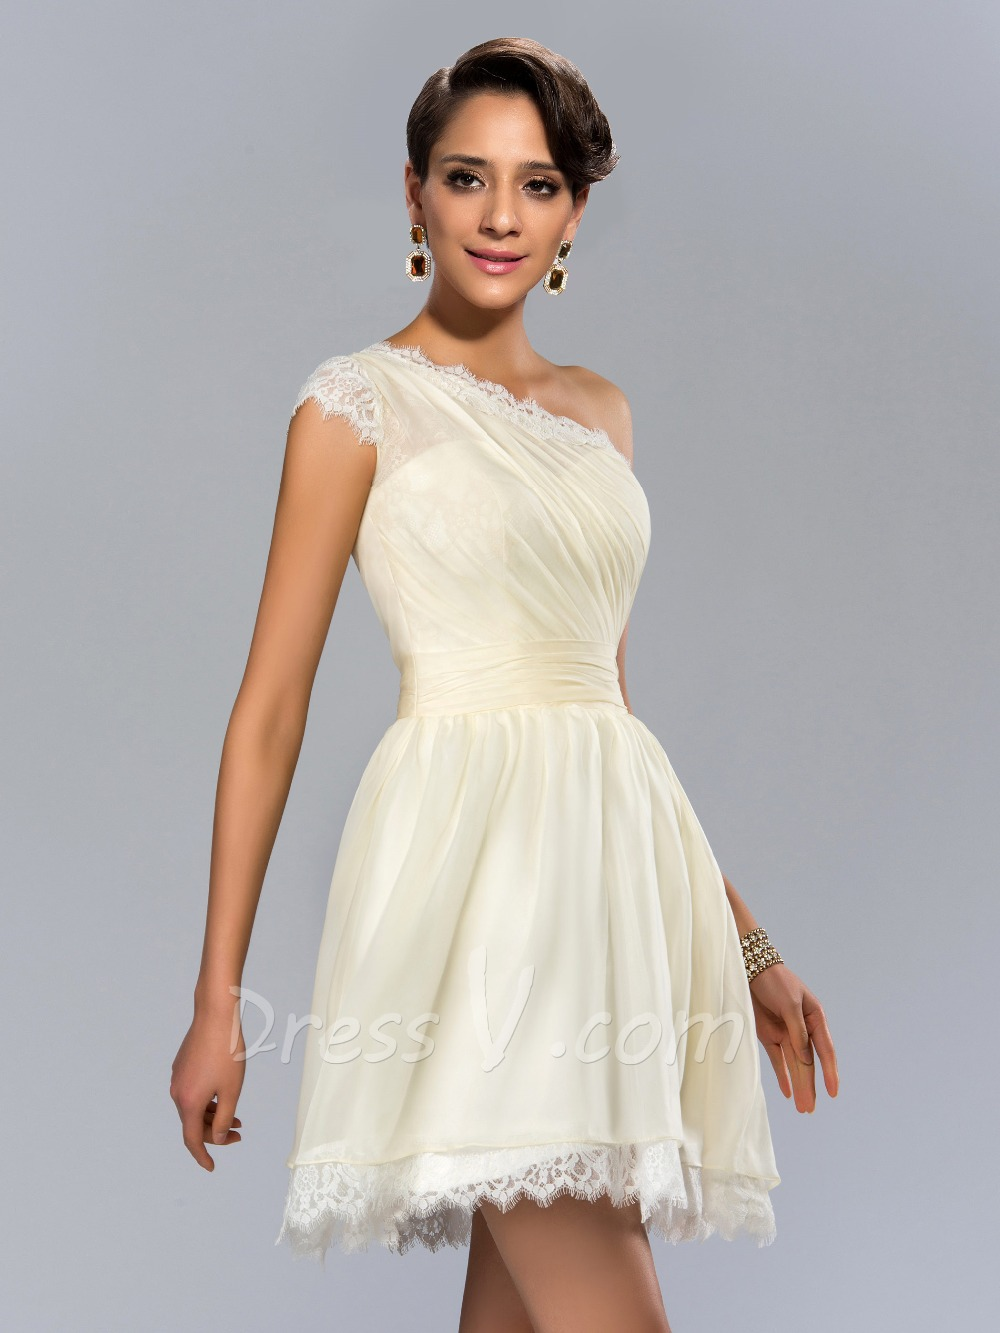 Short White Wedding Party Dresses Cocktail Dresses A line Lace One ...